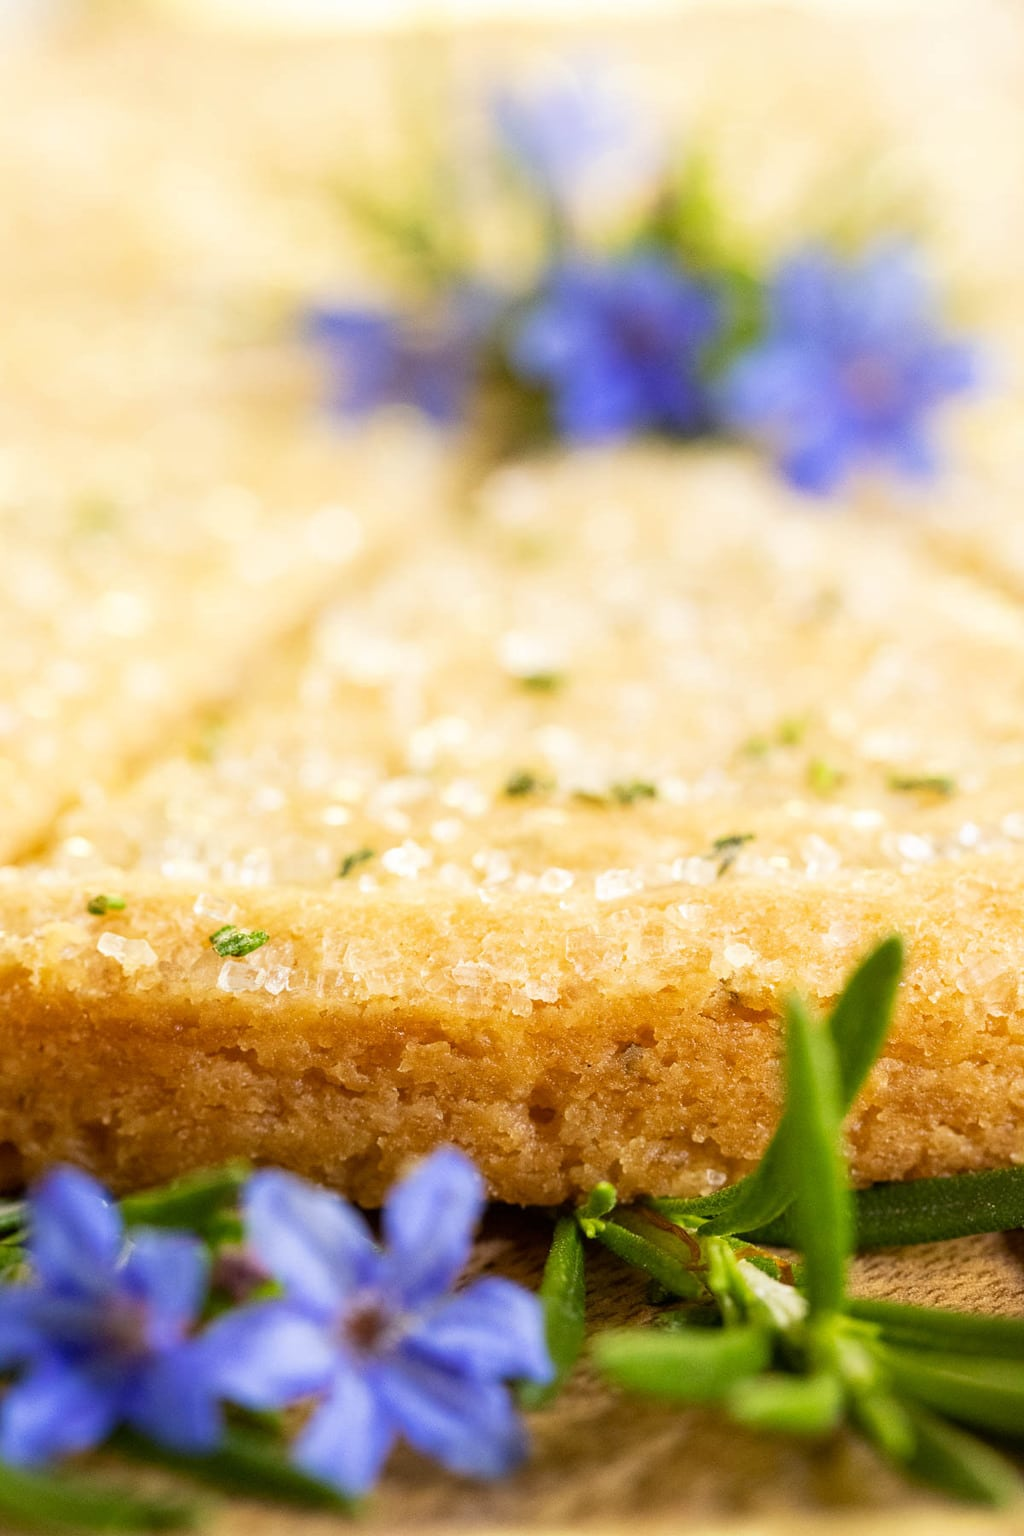 Ultra closeup vertical photo of the edge of Ridiculously Easy Rosemary Shortbread decorated with blue and green flowers.